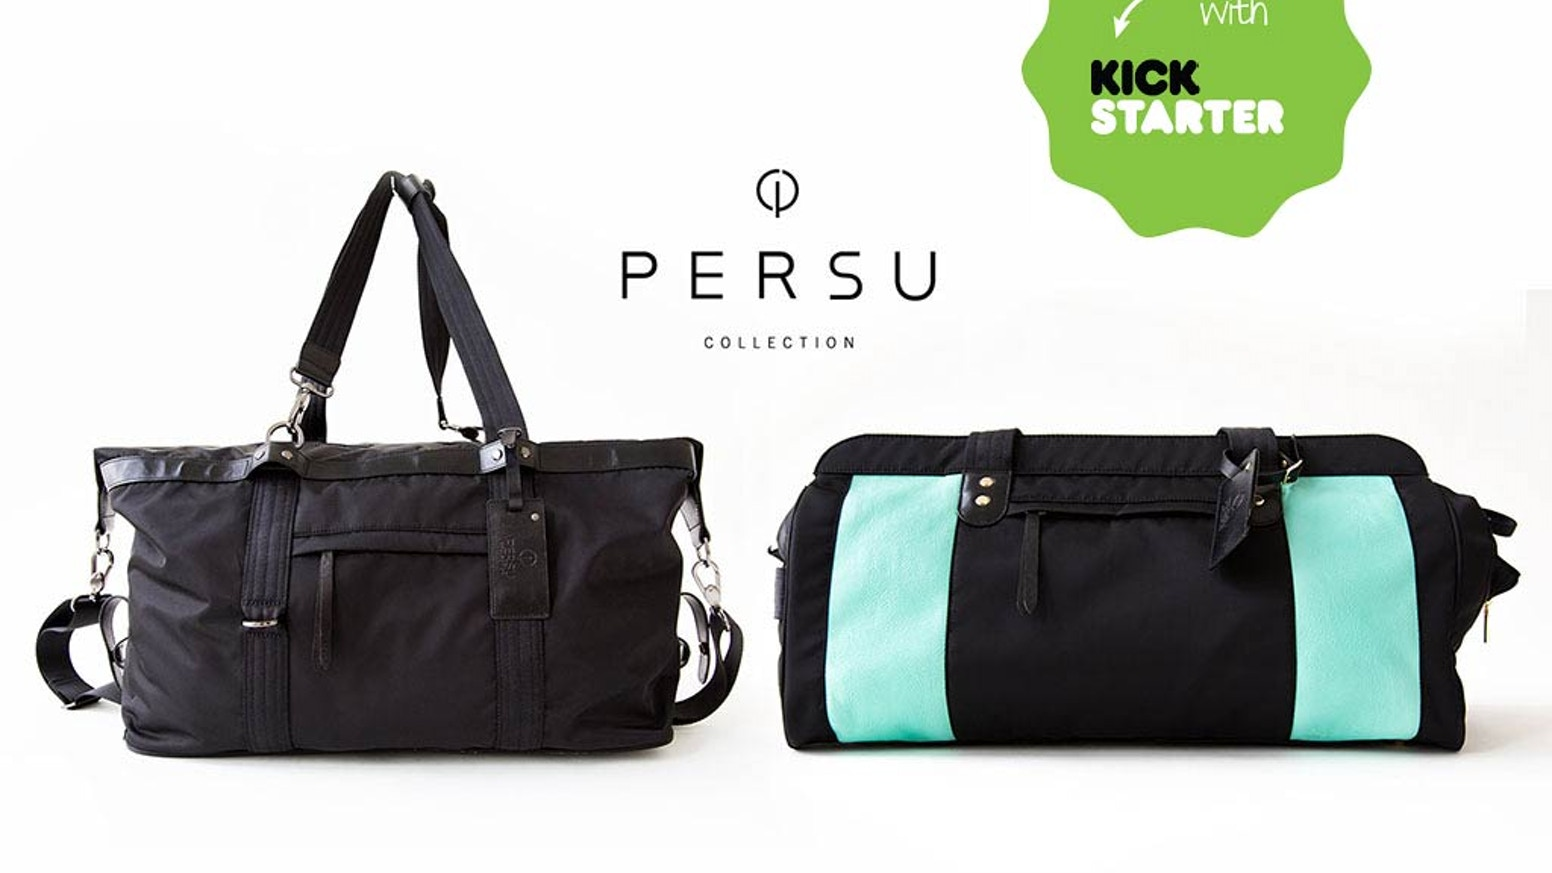 c197e5d4ab20 PERSU  Redefining Gym Bags for the Modern   Active Lifestyle. Functional